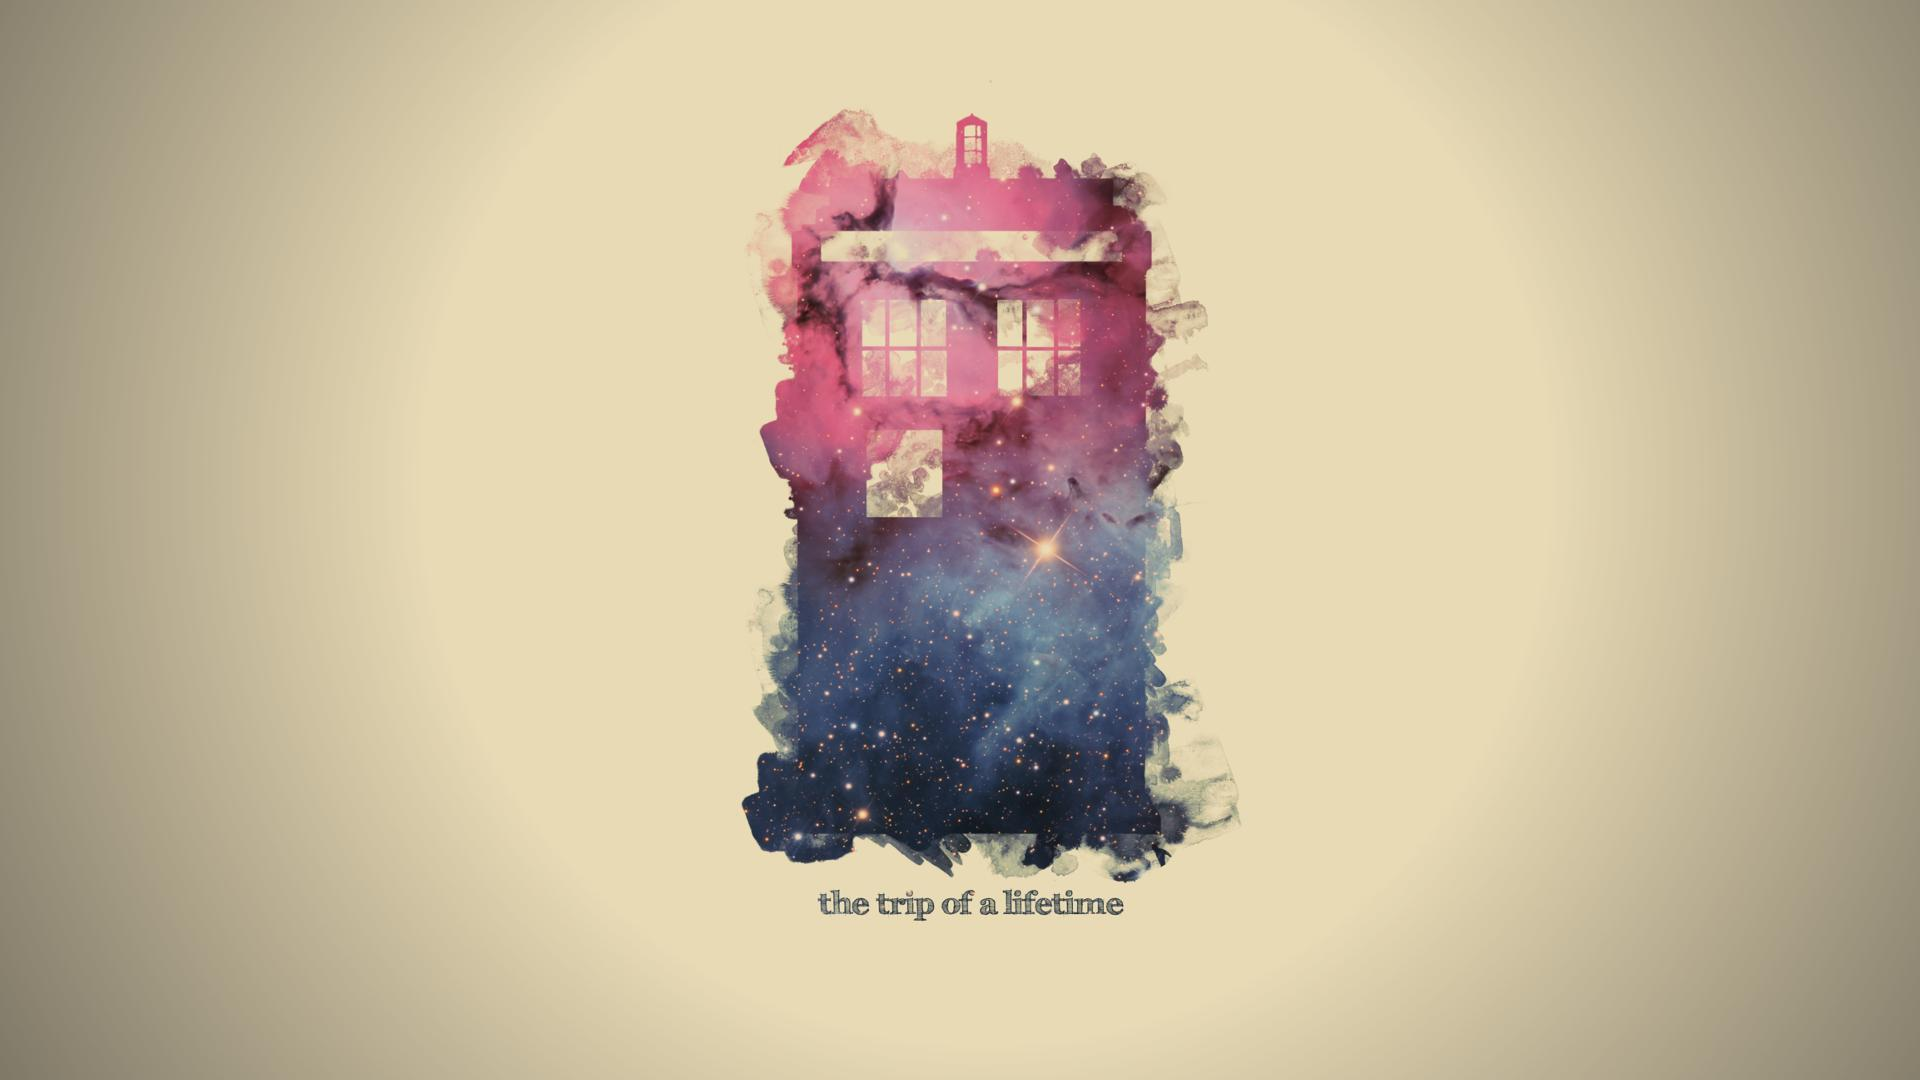 x-dr-who-Google-Search-Projects-to-Try-wallpaper-wpc90010814